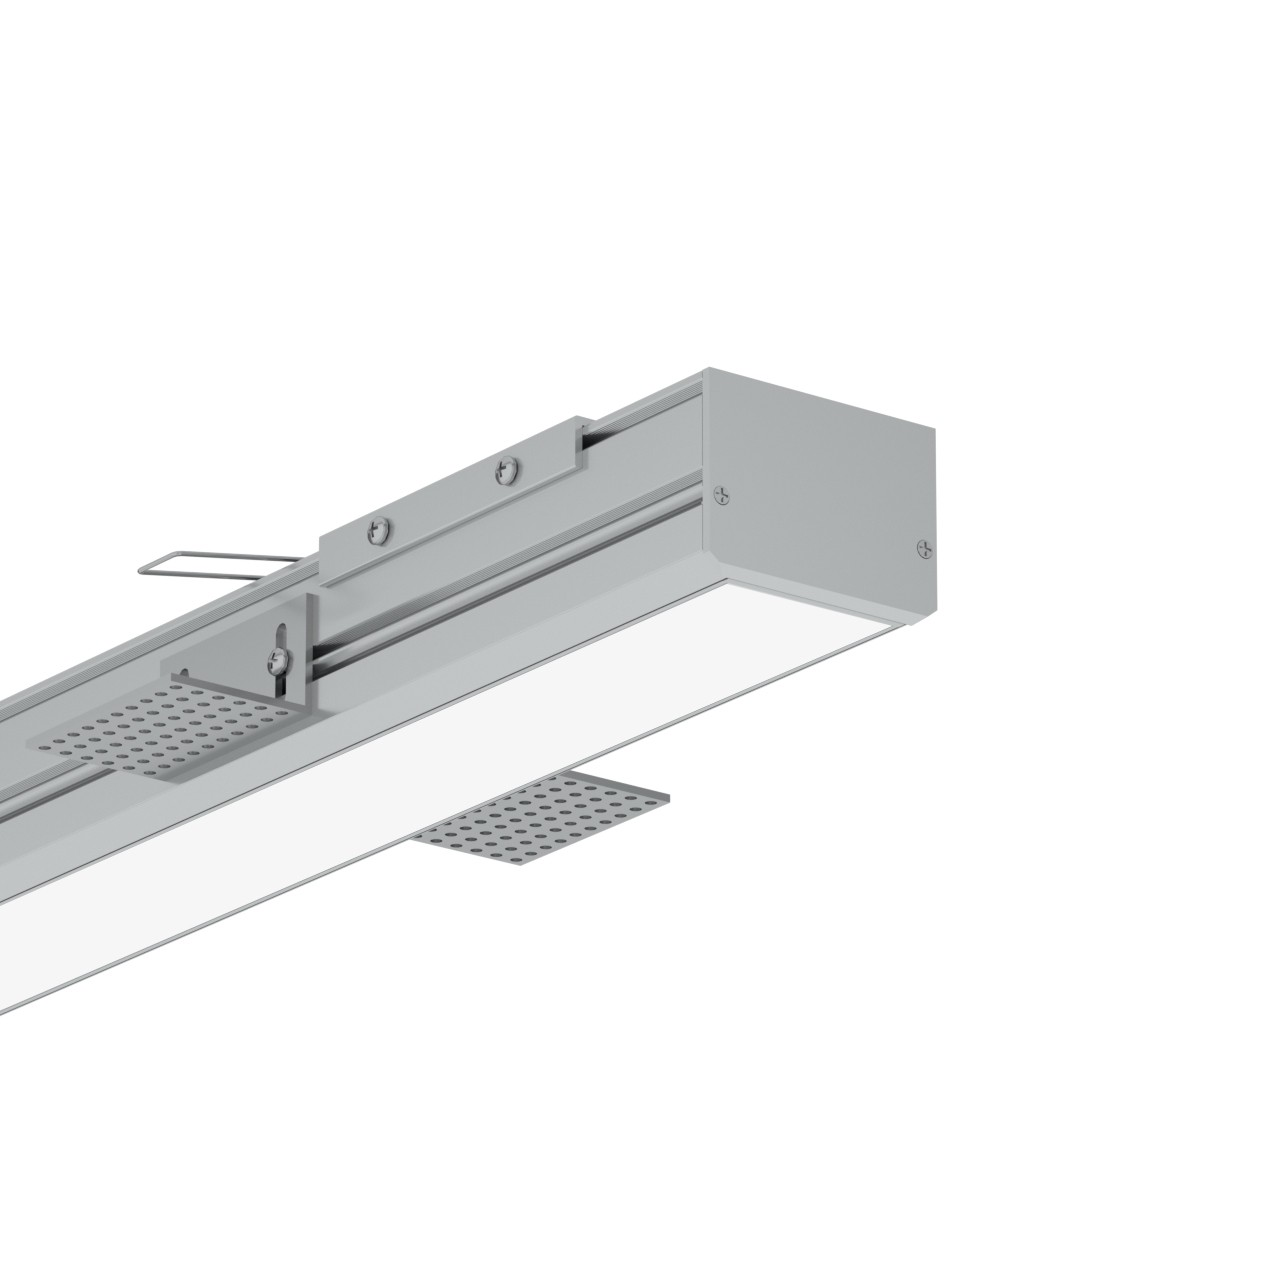 TR50 50mm Trimless førte profil for gips loft 65x48mm